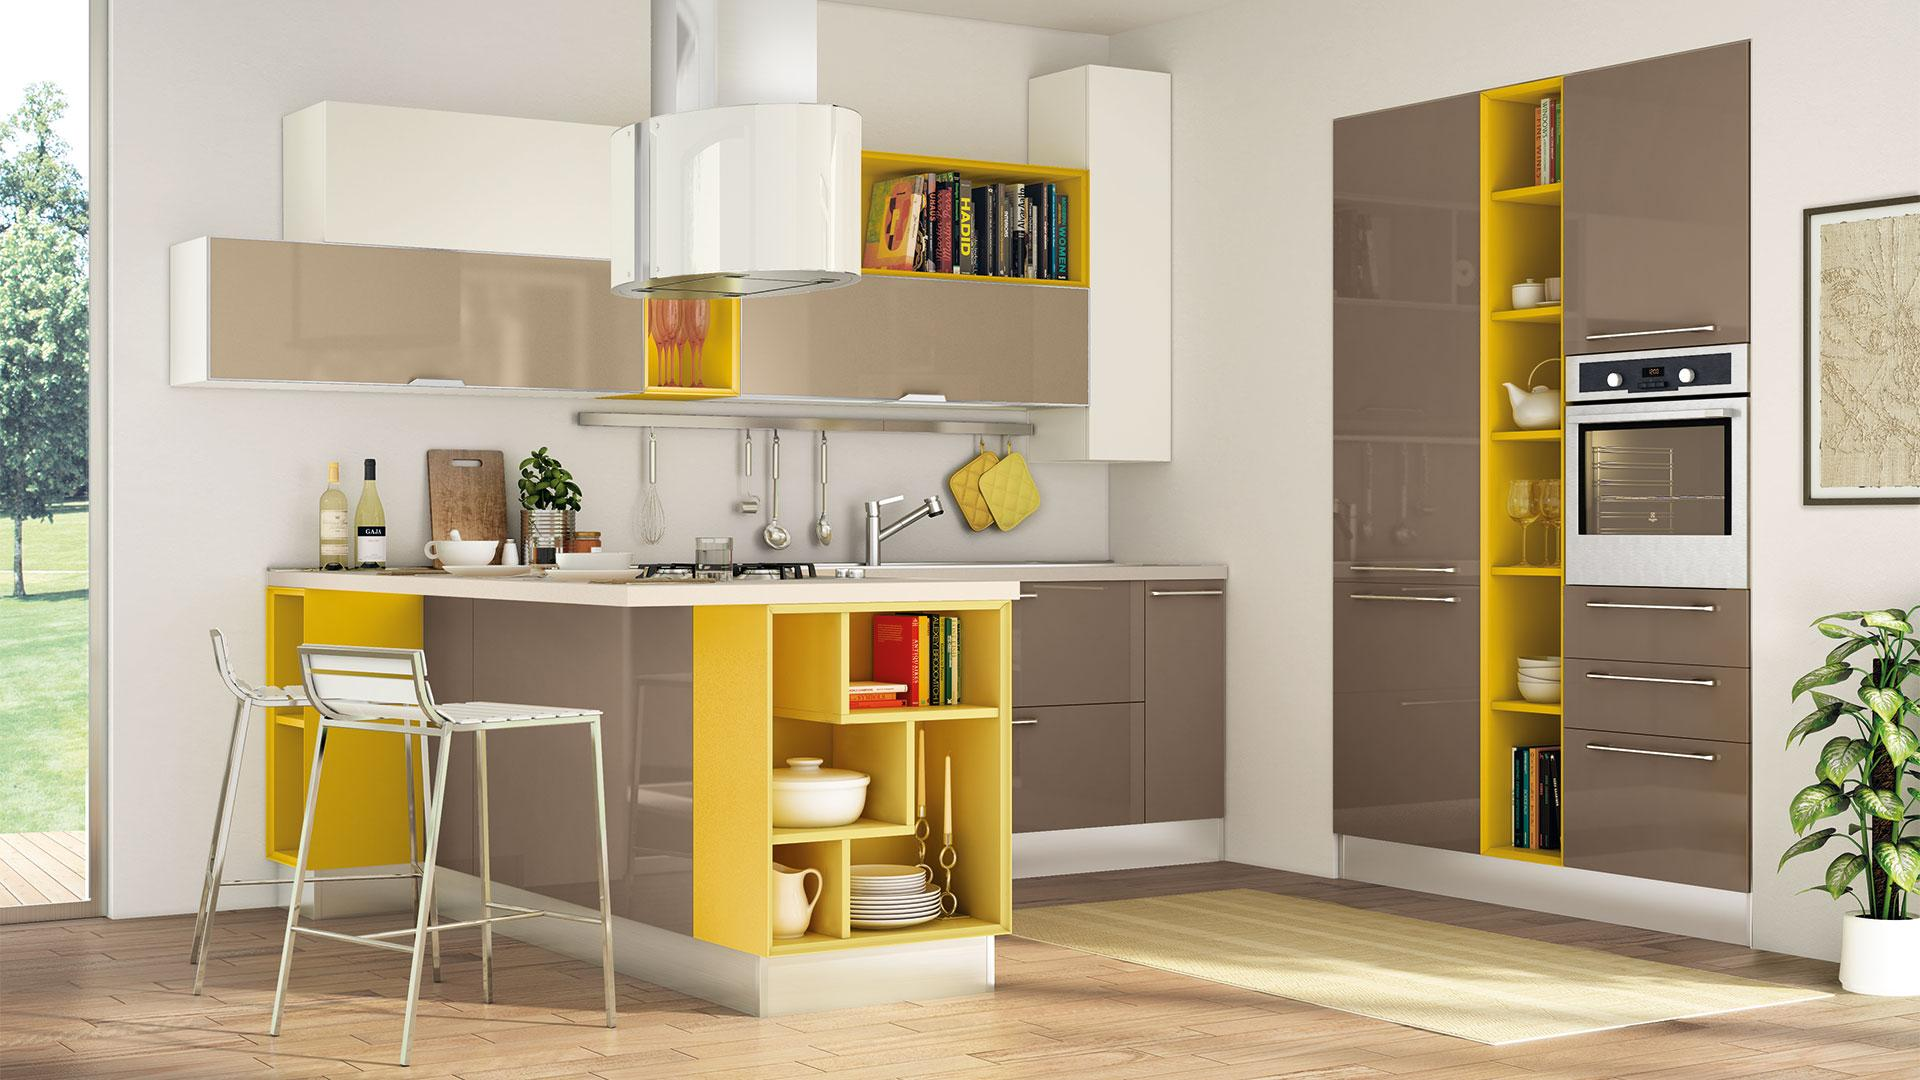 Emejing Cucine Etniche Milano Contemporary - Home Design Ideas 2017 ...